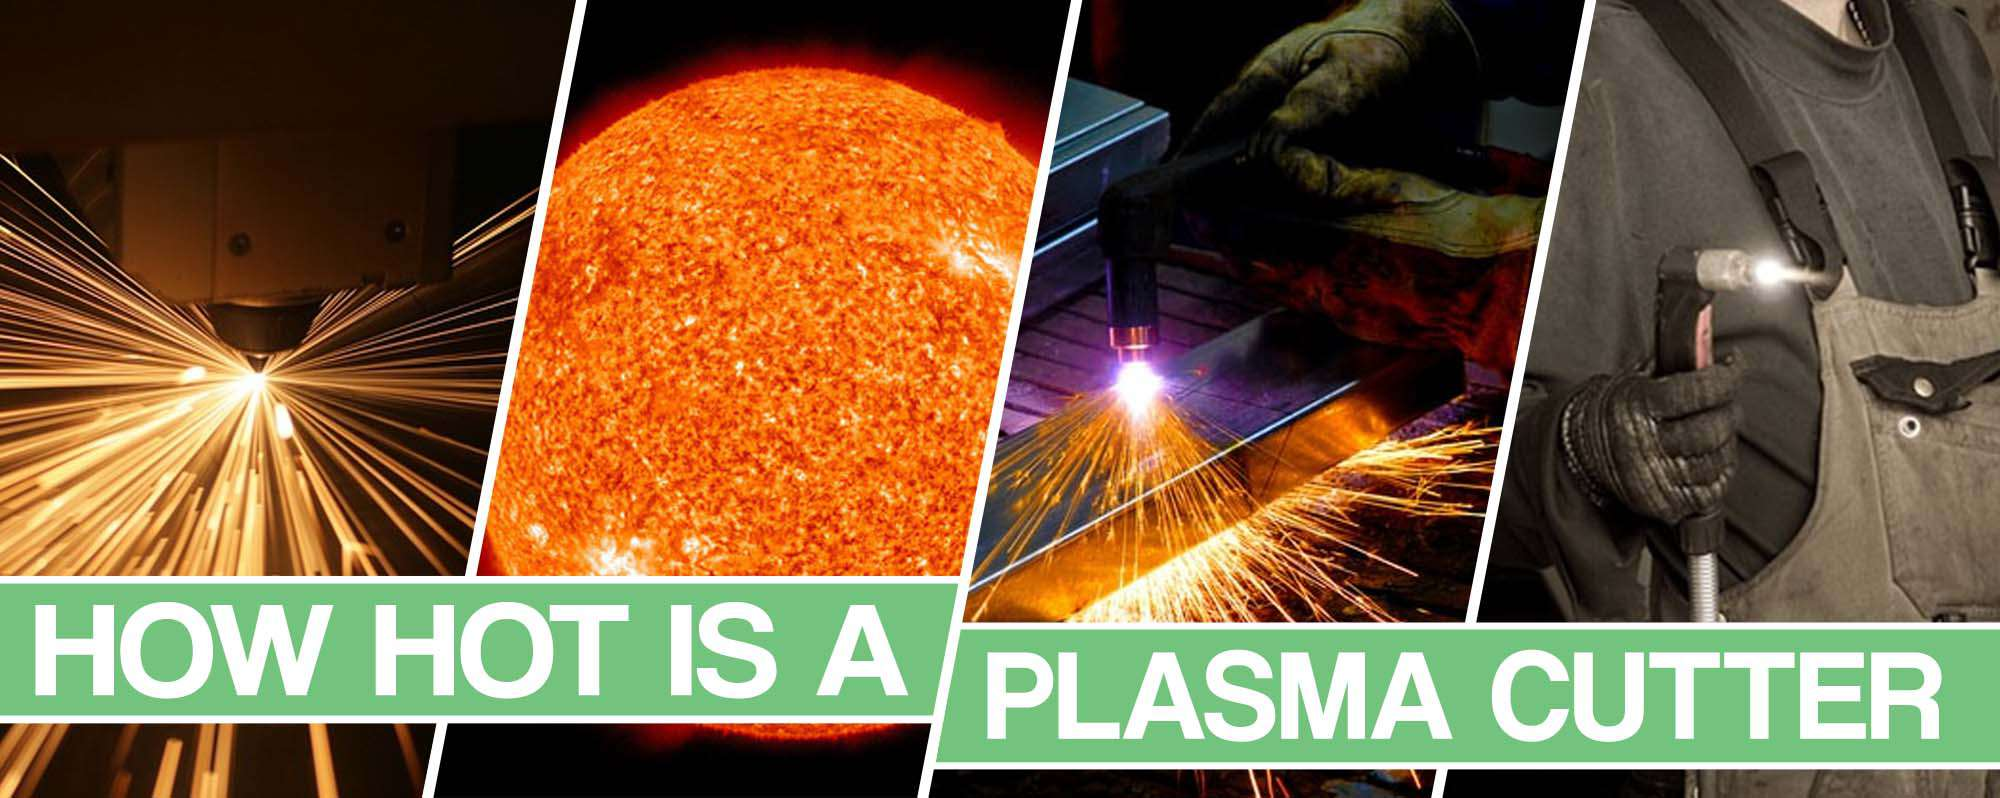 image showing the plasma cutter heat